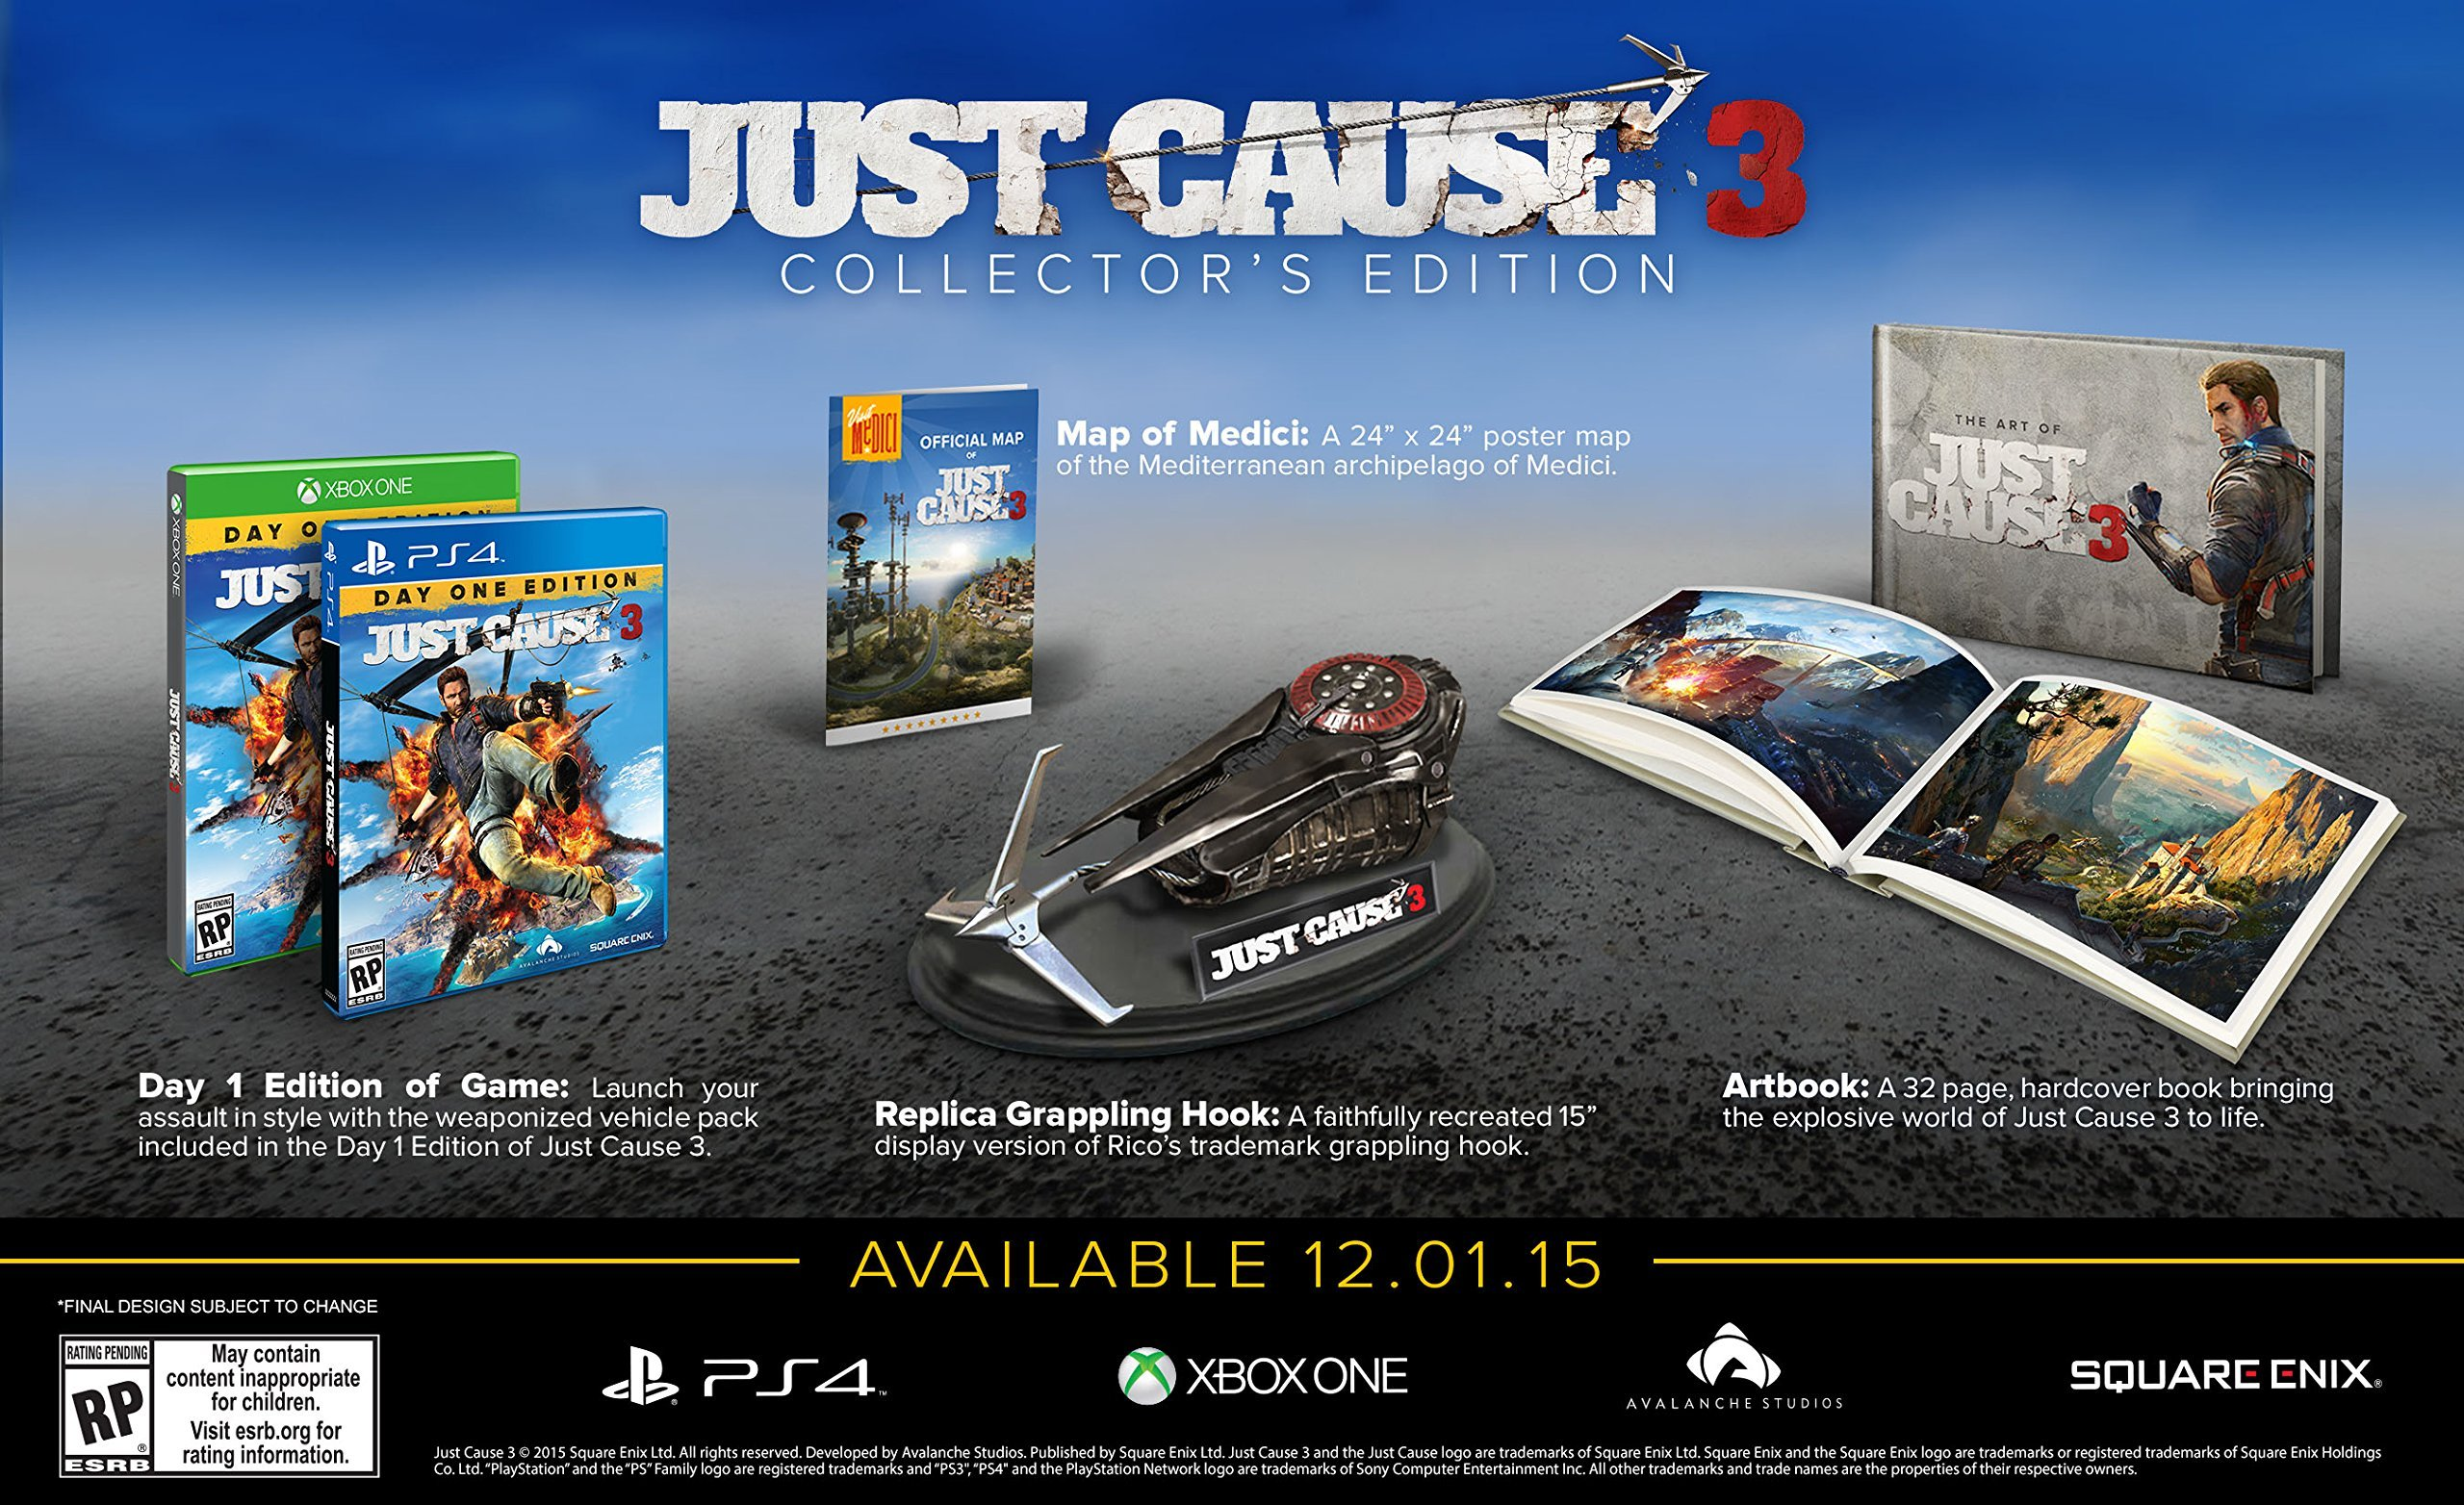 Just cause 3 updates: unboxed collector's edition & gorgeous ps4.